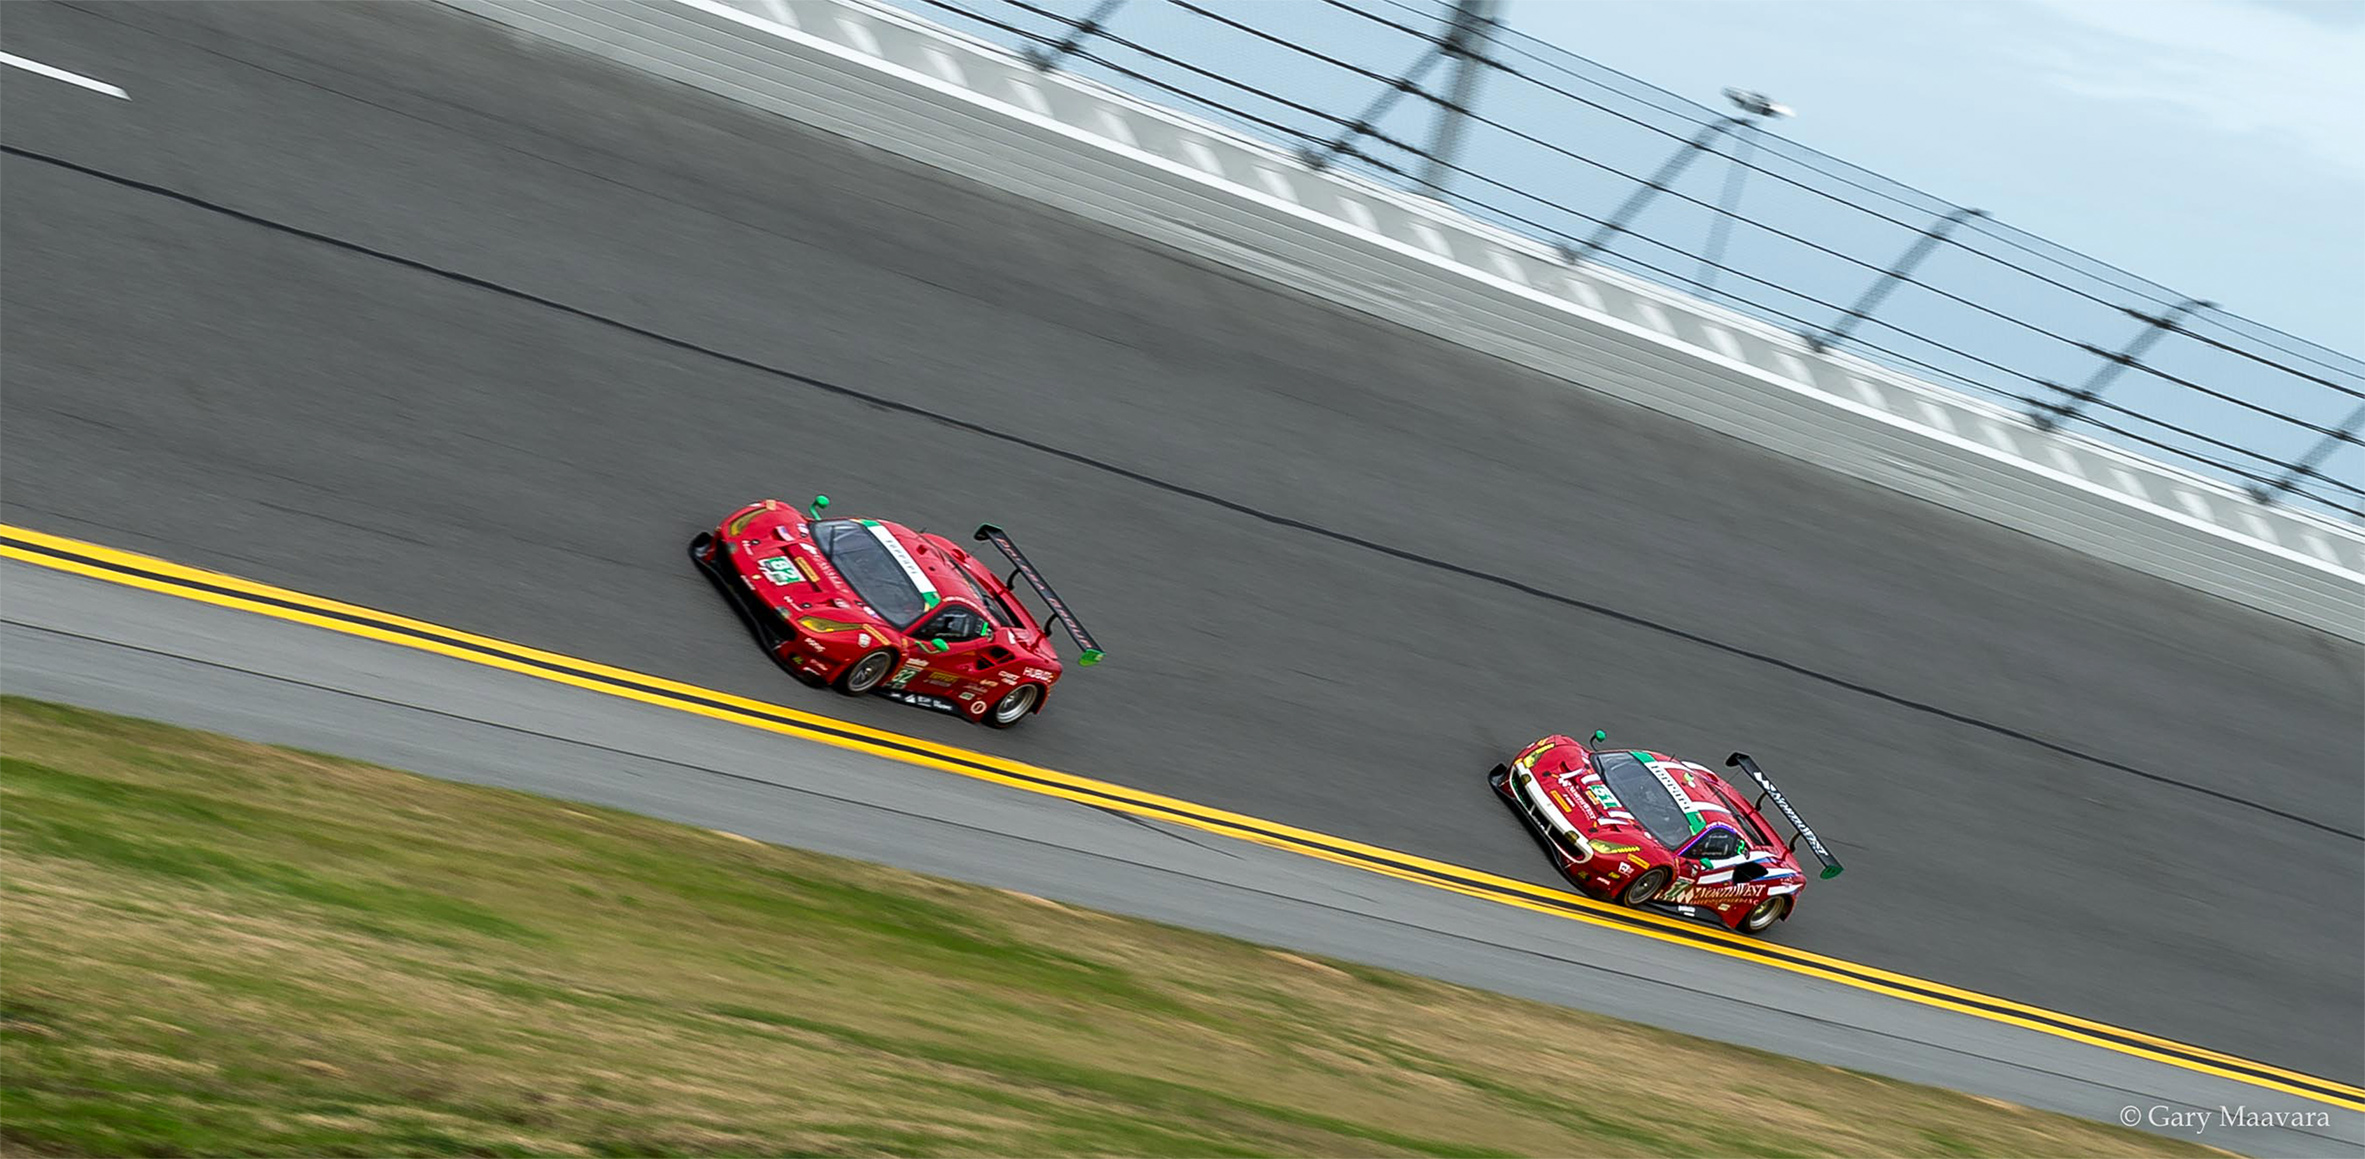 Rolex 24_race_#51 Spirit of Racing Ferrari chases # 82 Risi Competizione Ferrari_Turn 4